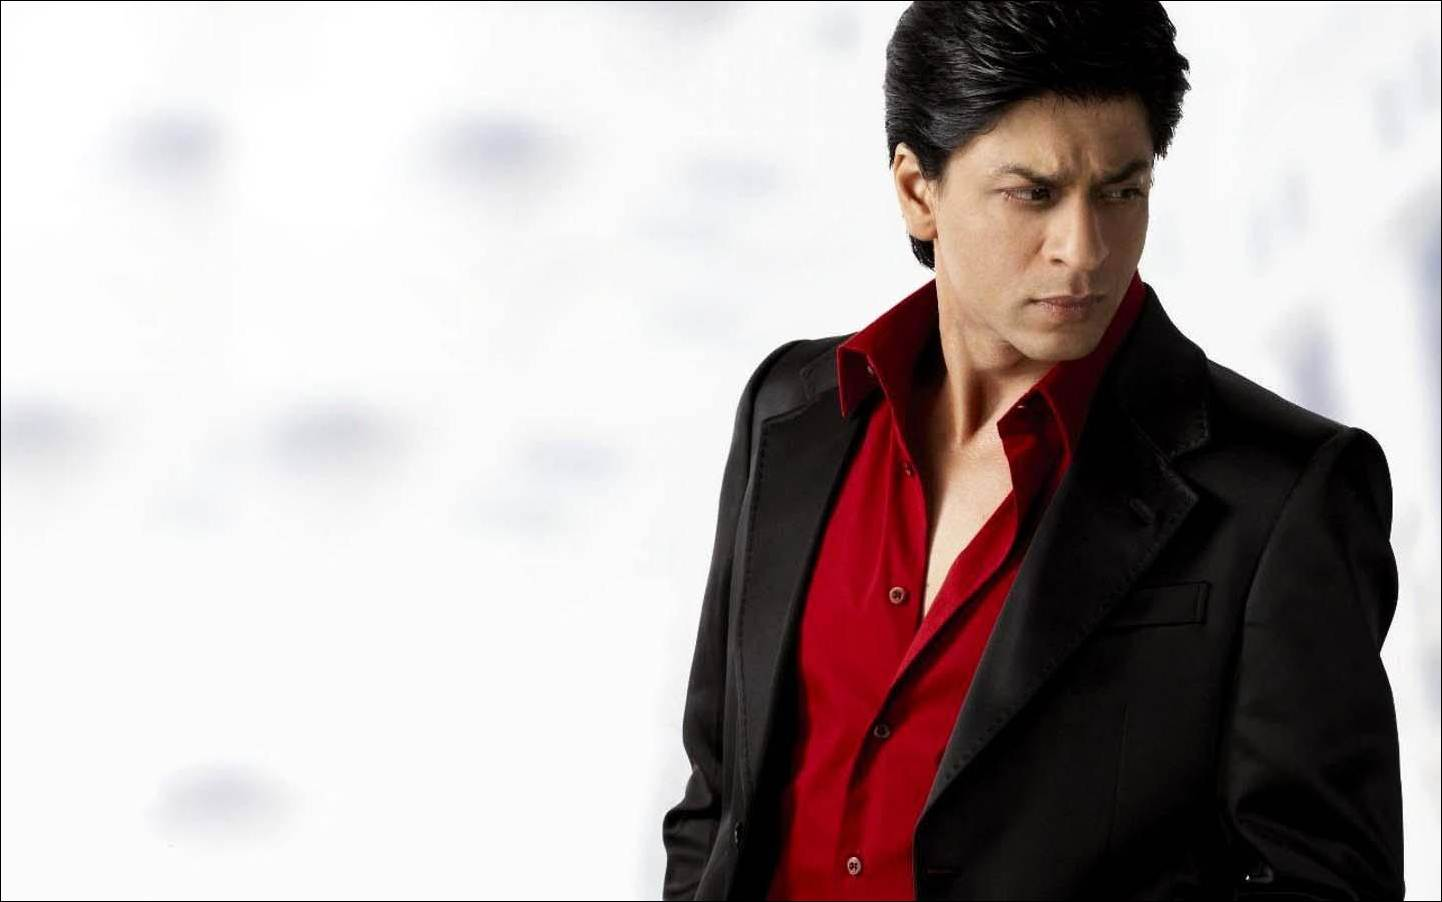 Shahrukh Khan Producer and Television Personality